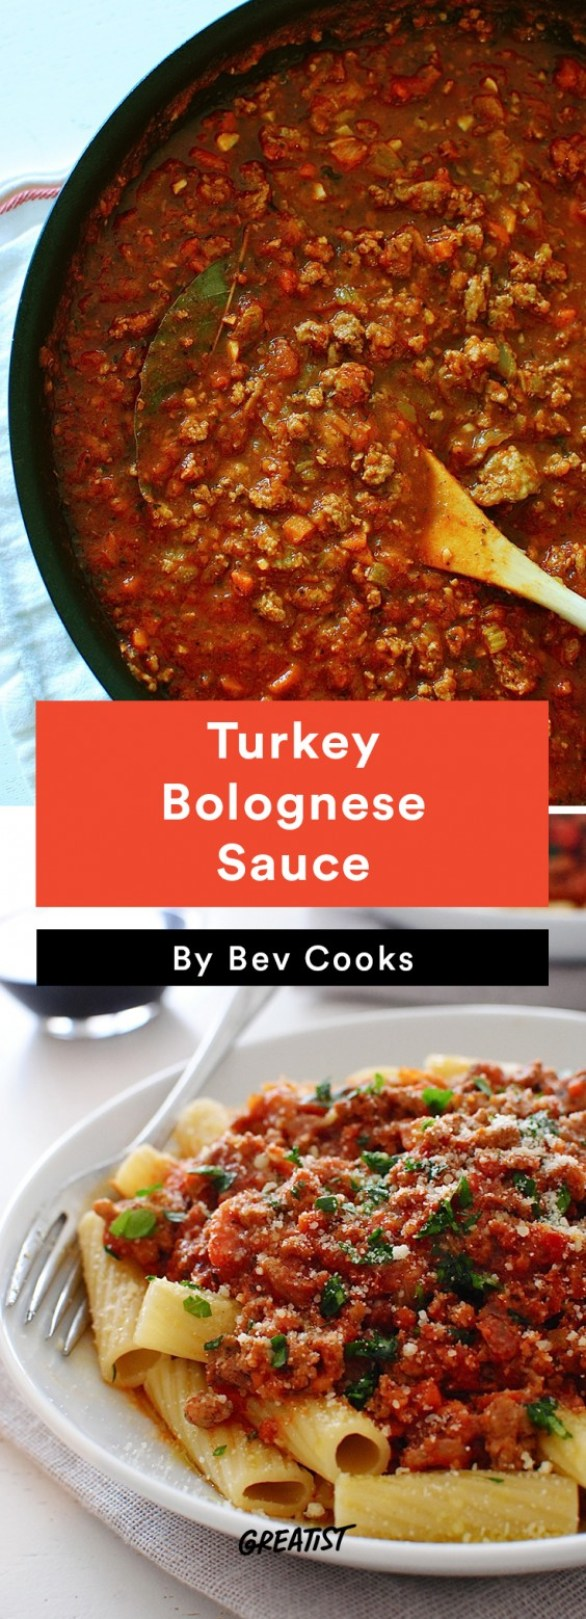 Turkey Bolognese Sauce Recipe